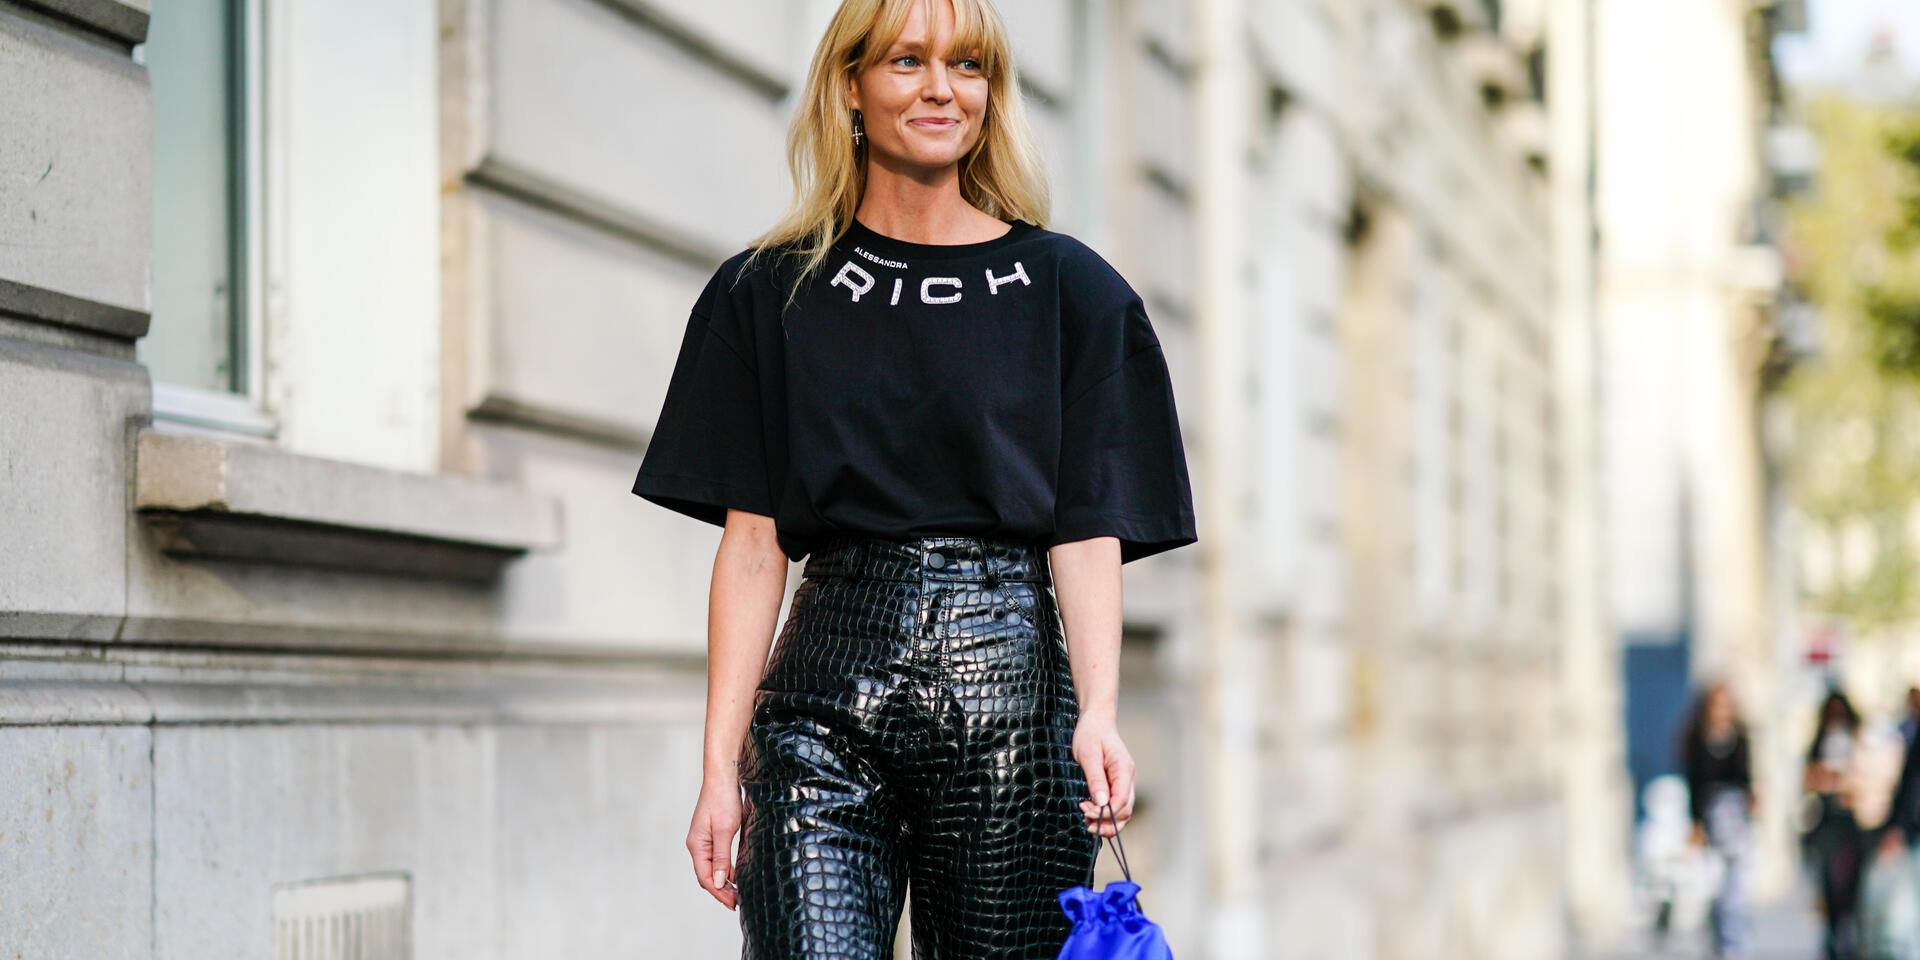 PARIS, FRANCE - SEPTEMBER 27: Jeanette Madsen wears earrings, a black Alessandra Rich  t-shirt, shiny black crocodile pattern high waist leather pants, a blue fringy bag, outside Alessandra Rich, during Paris Fashion Week - Womenswear Spring Summer 2020 on September 27, 2019 in Paris, France. (Photo by Edward Berthelot/Getty Images)